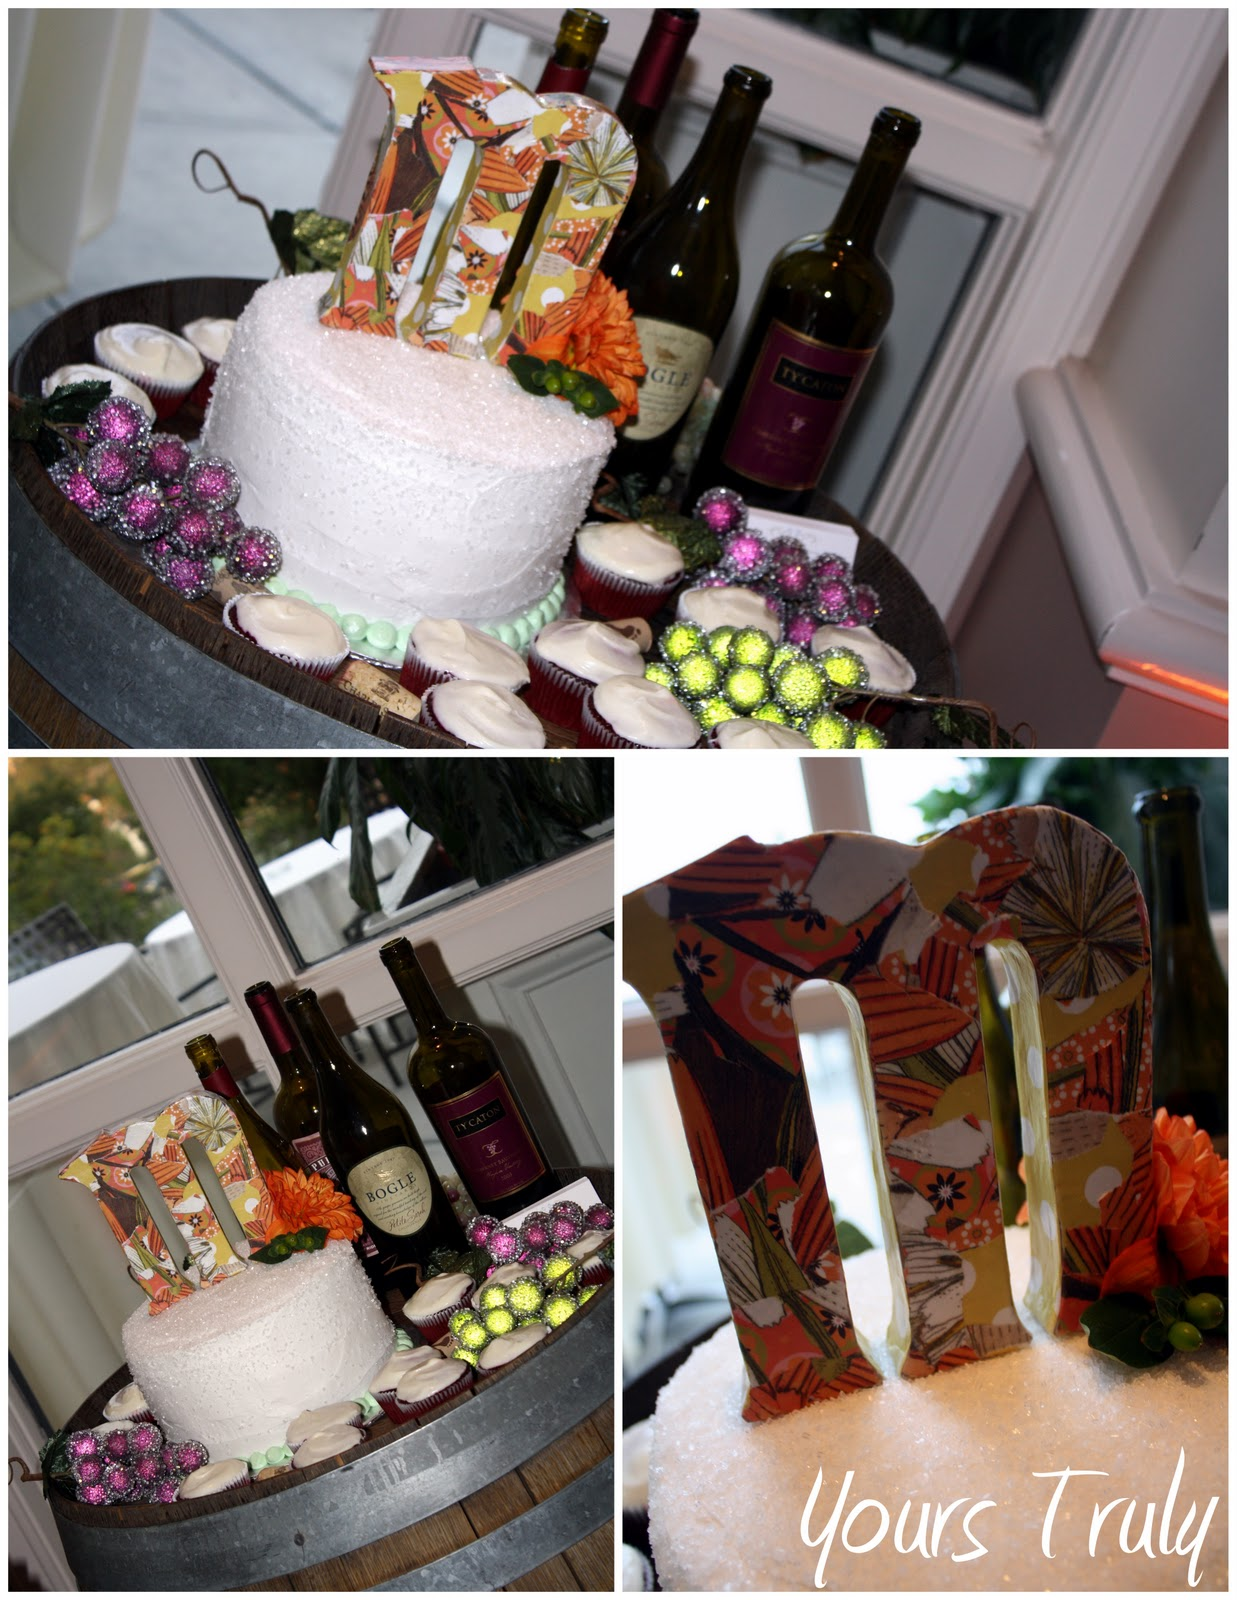 Yours Truly Wedding And Event Design Mittskus Wine